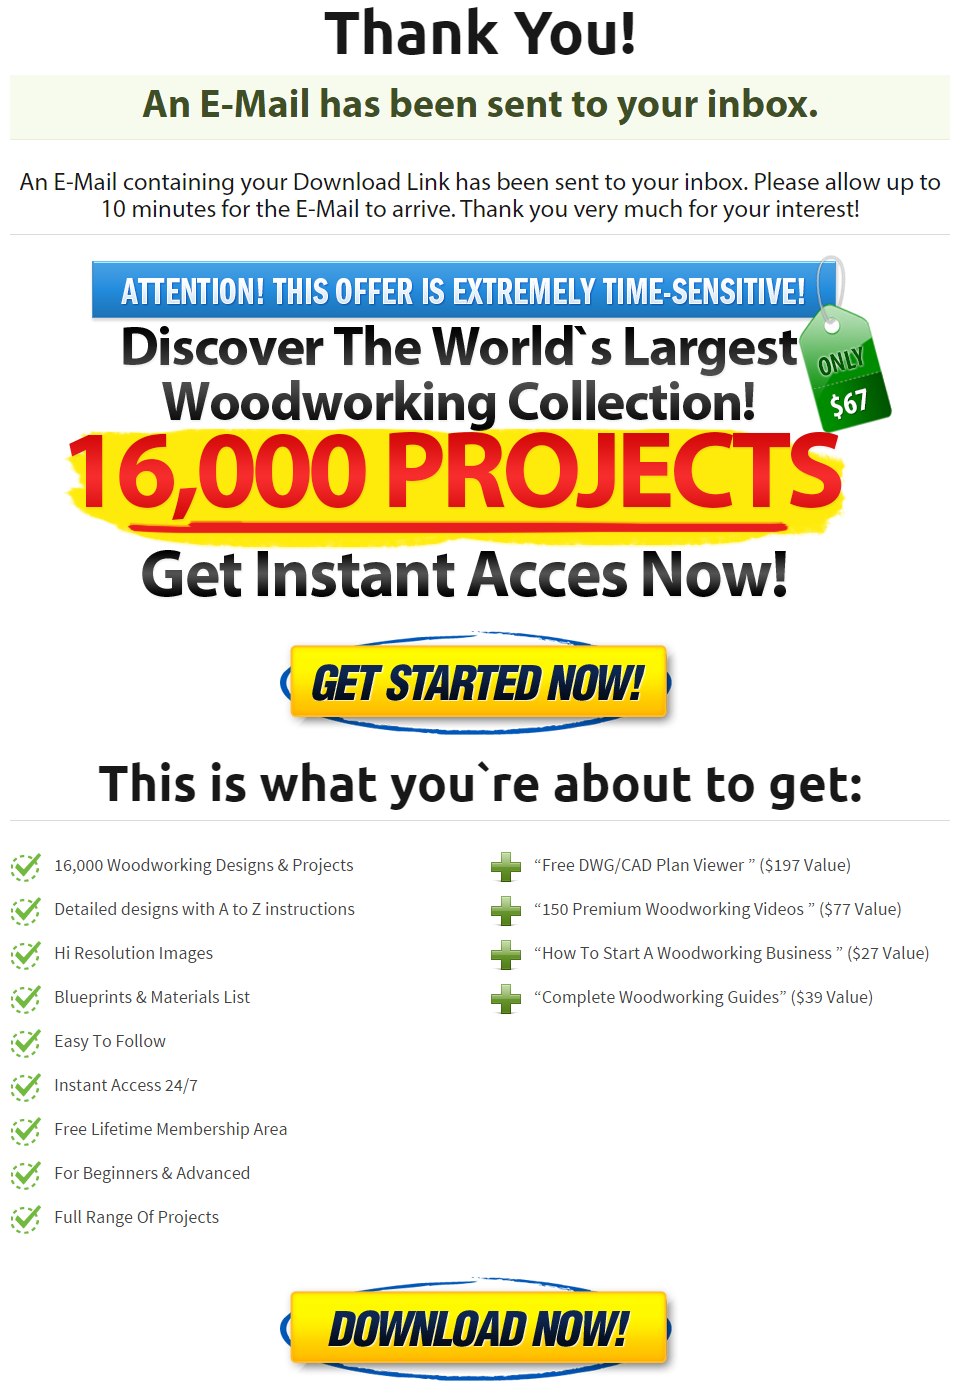 woodworking download